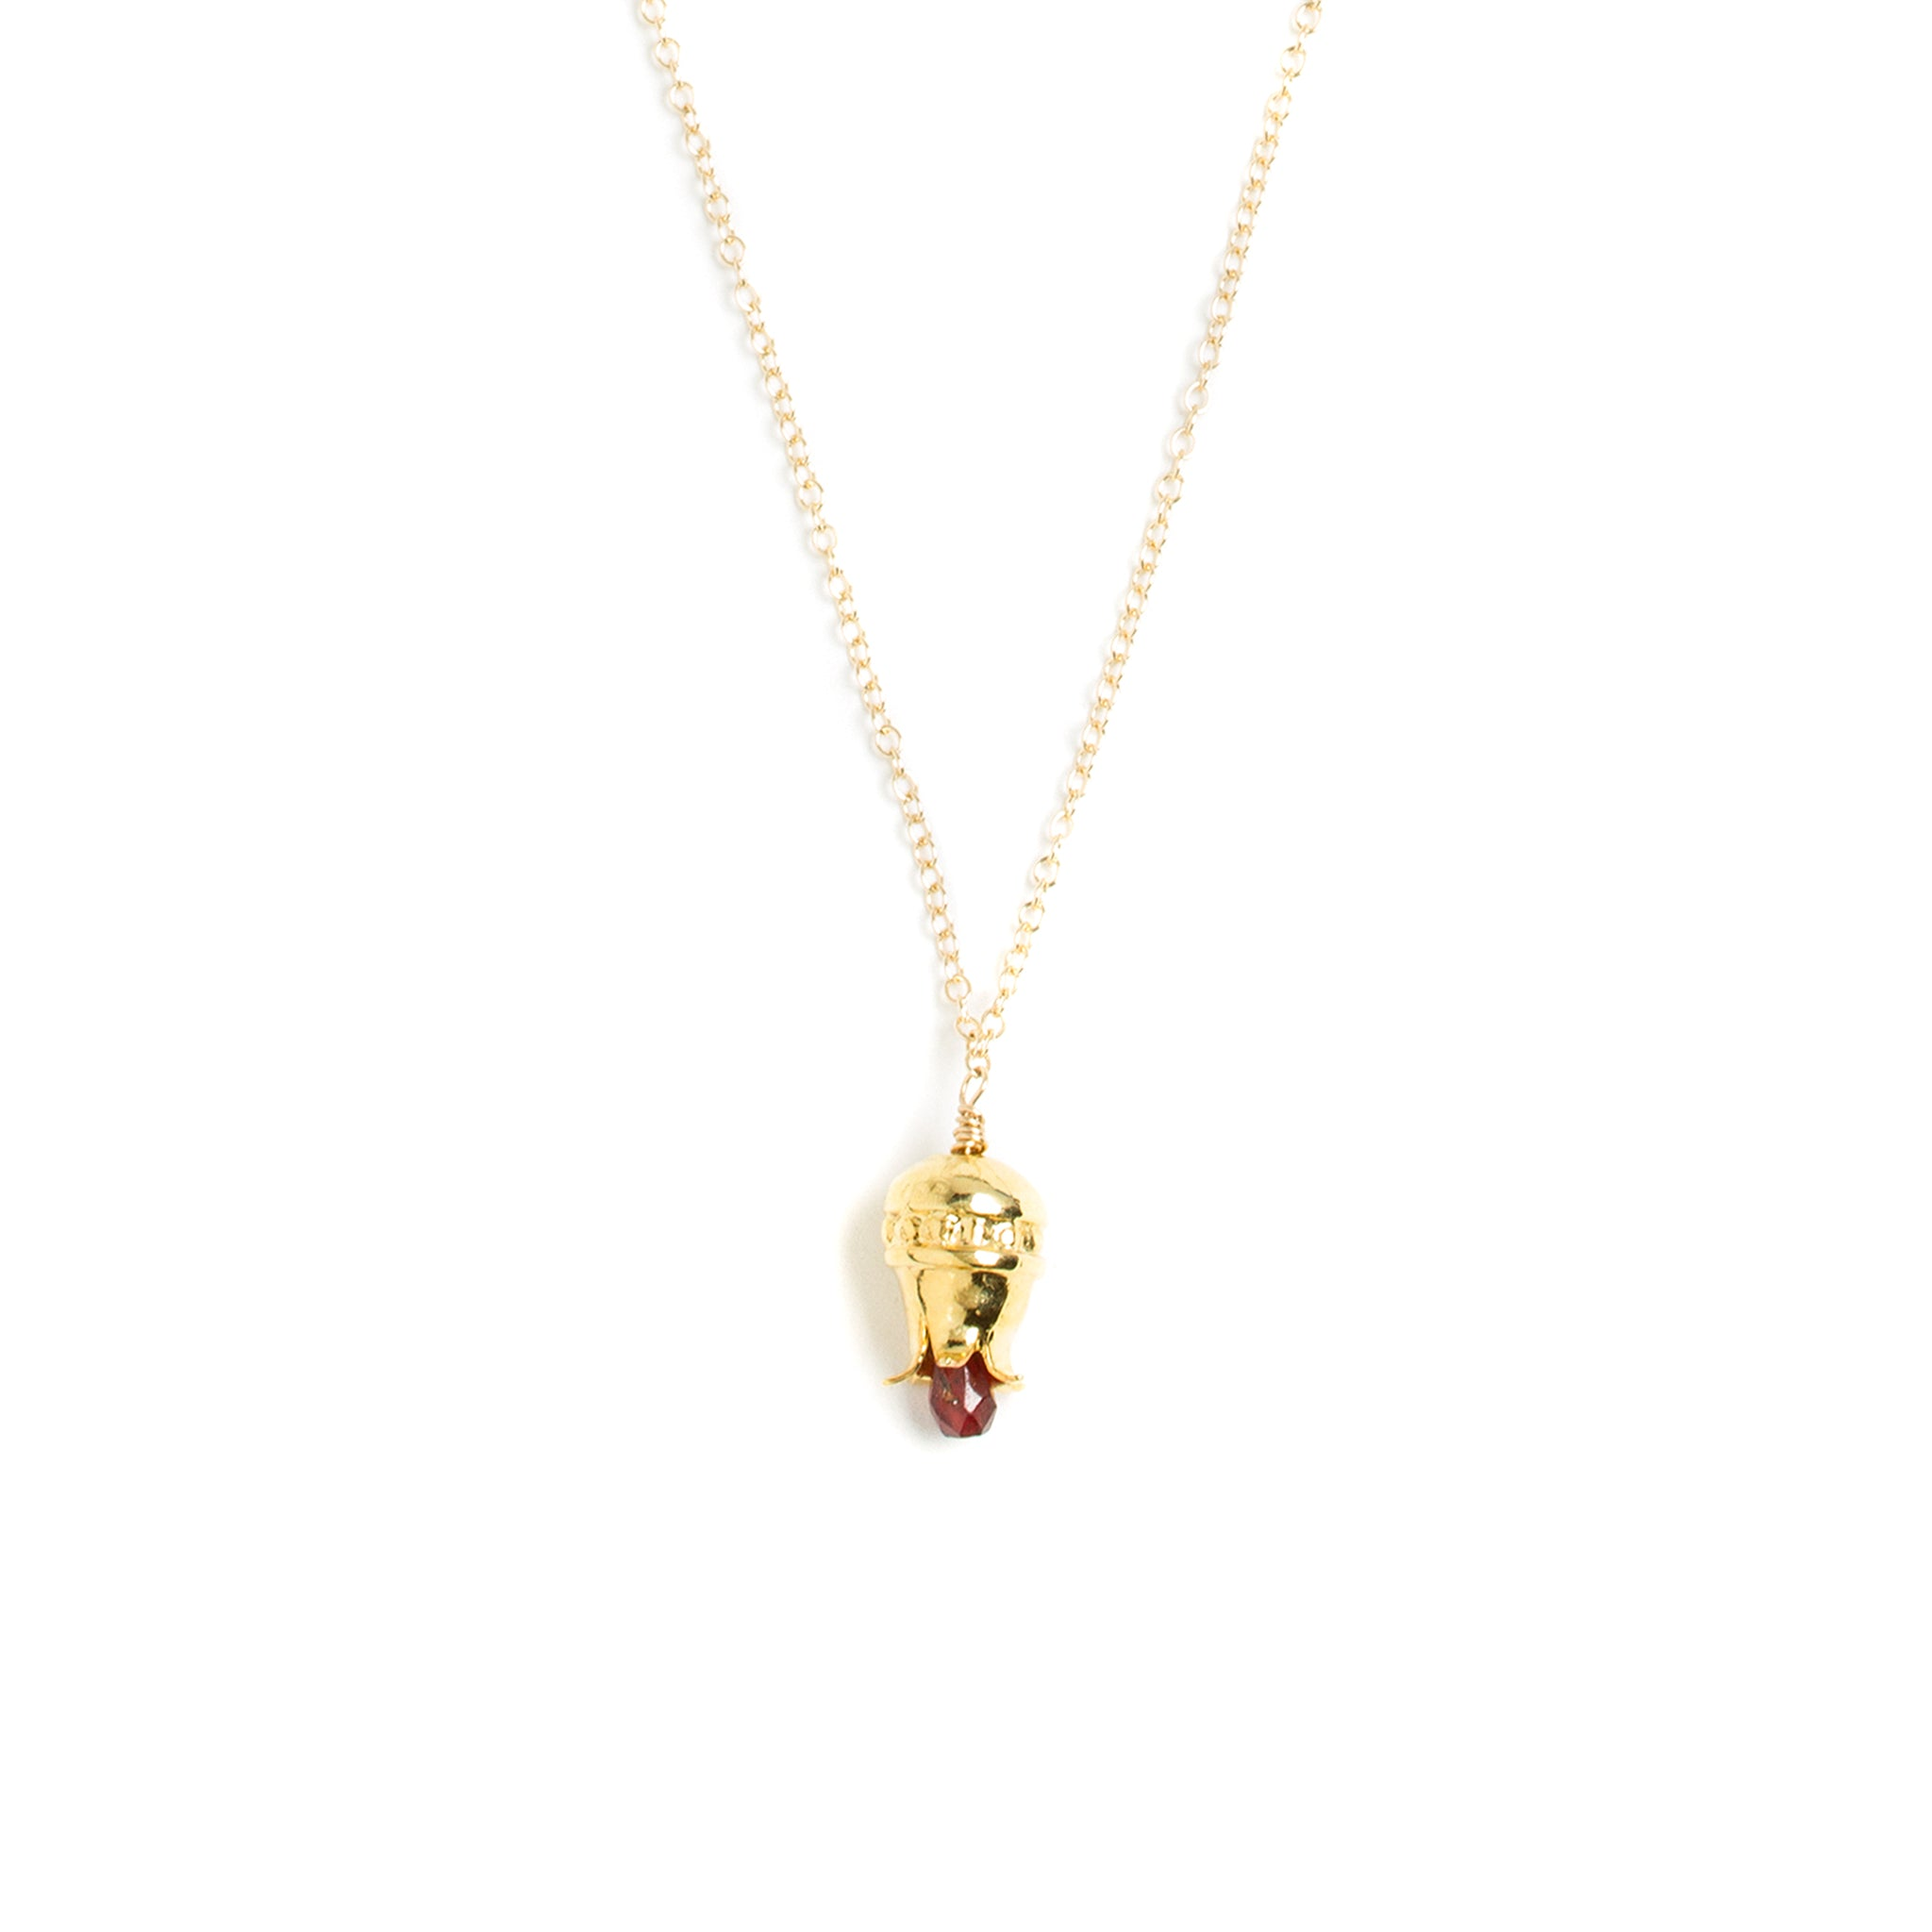 garnet links hires gb london rhodolite and gold amp infinite pendant rose love of en necklace